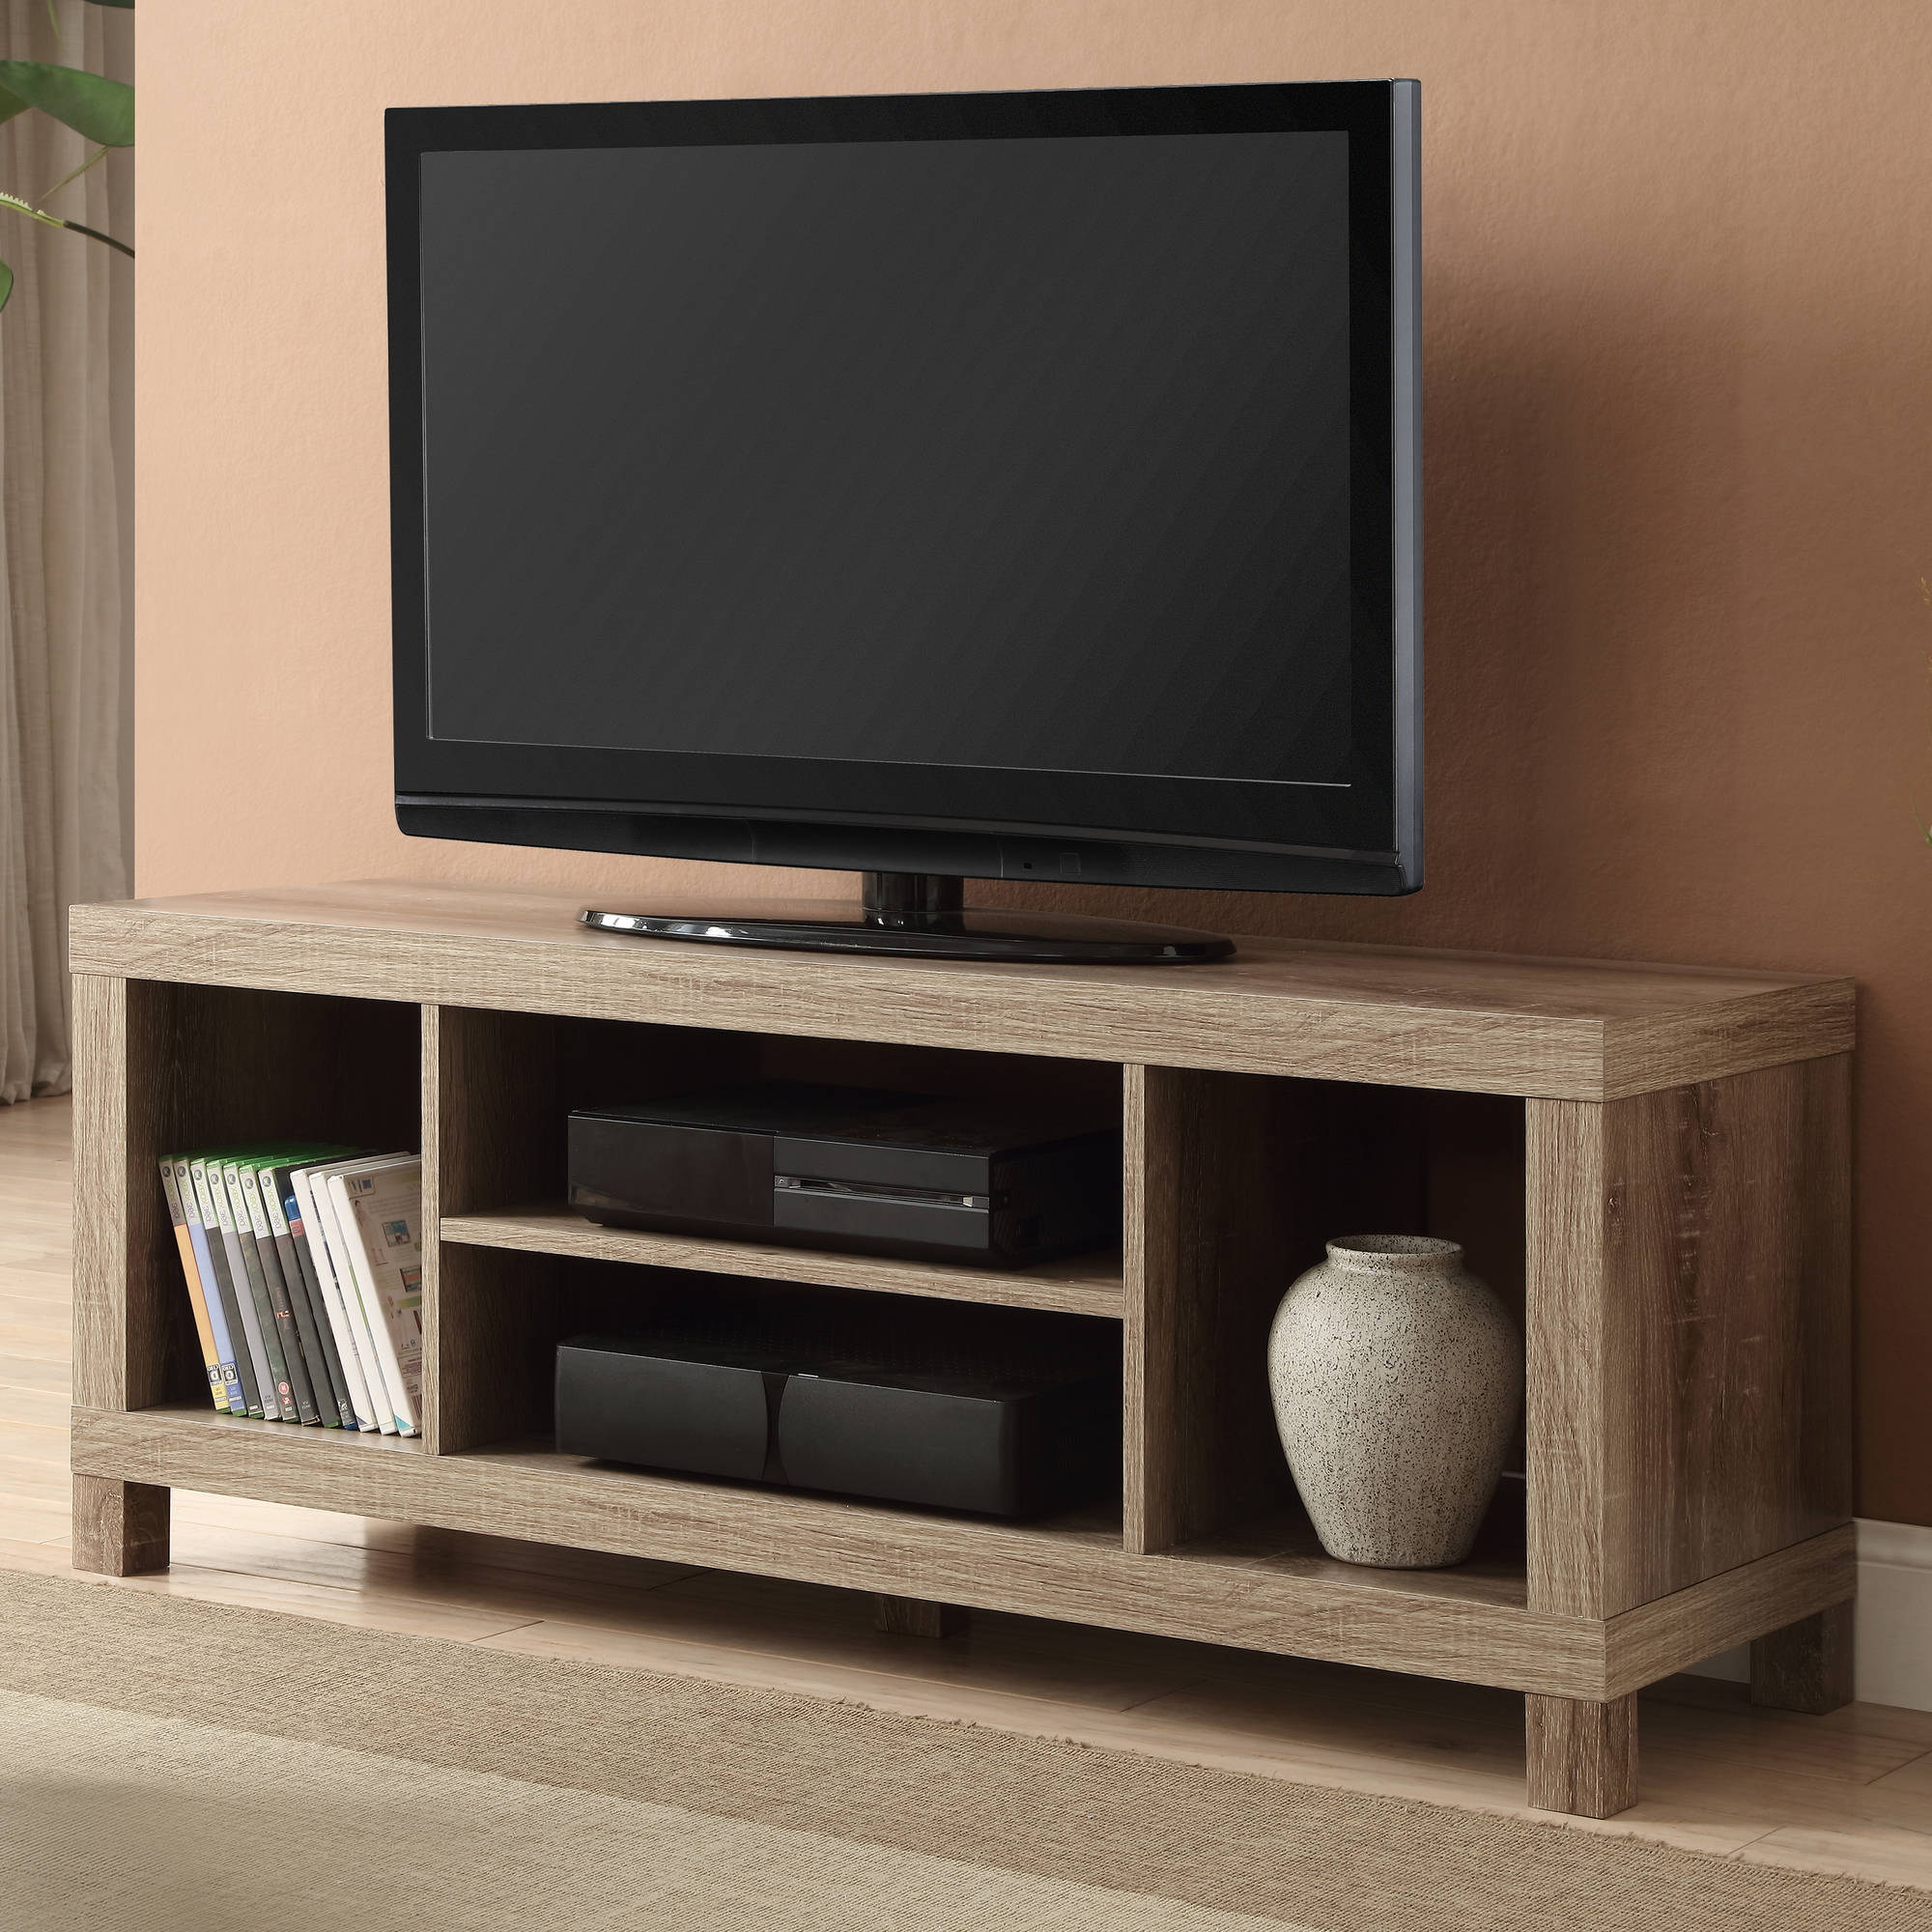 Newest 42 Inch Tv Stand Entertainment Center Home Theater Media Storage For Storage Tv Stands (View 8 of 20)